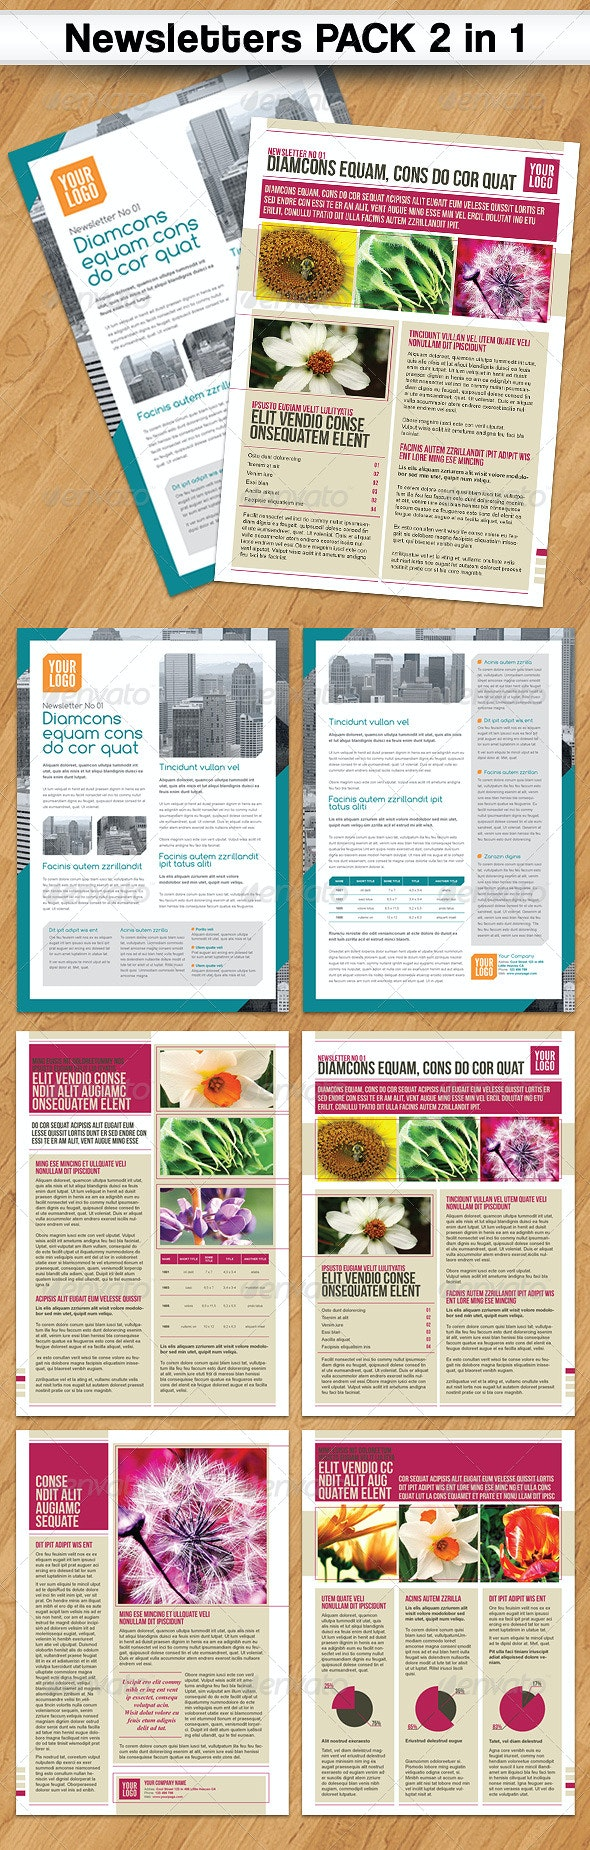 Newsletters PACK 2 in 1 - Newsletters Print Templates